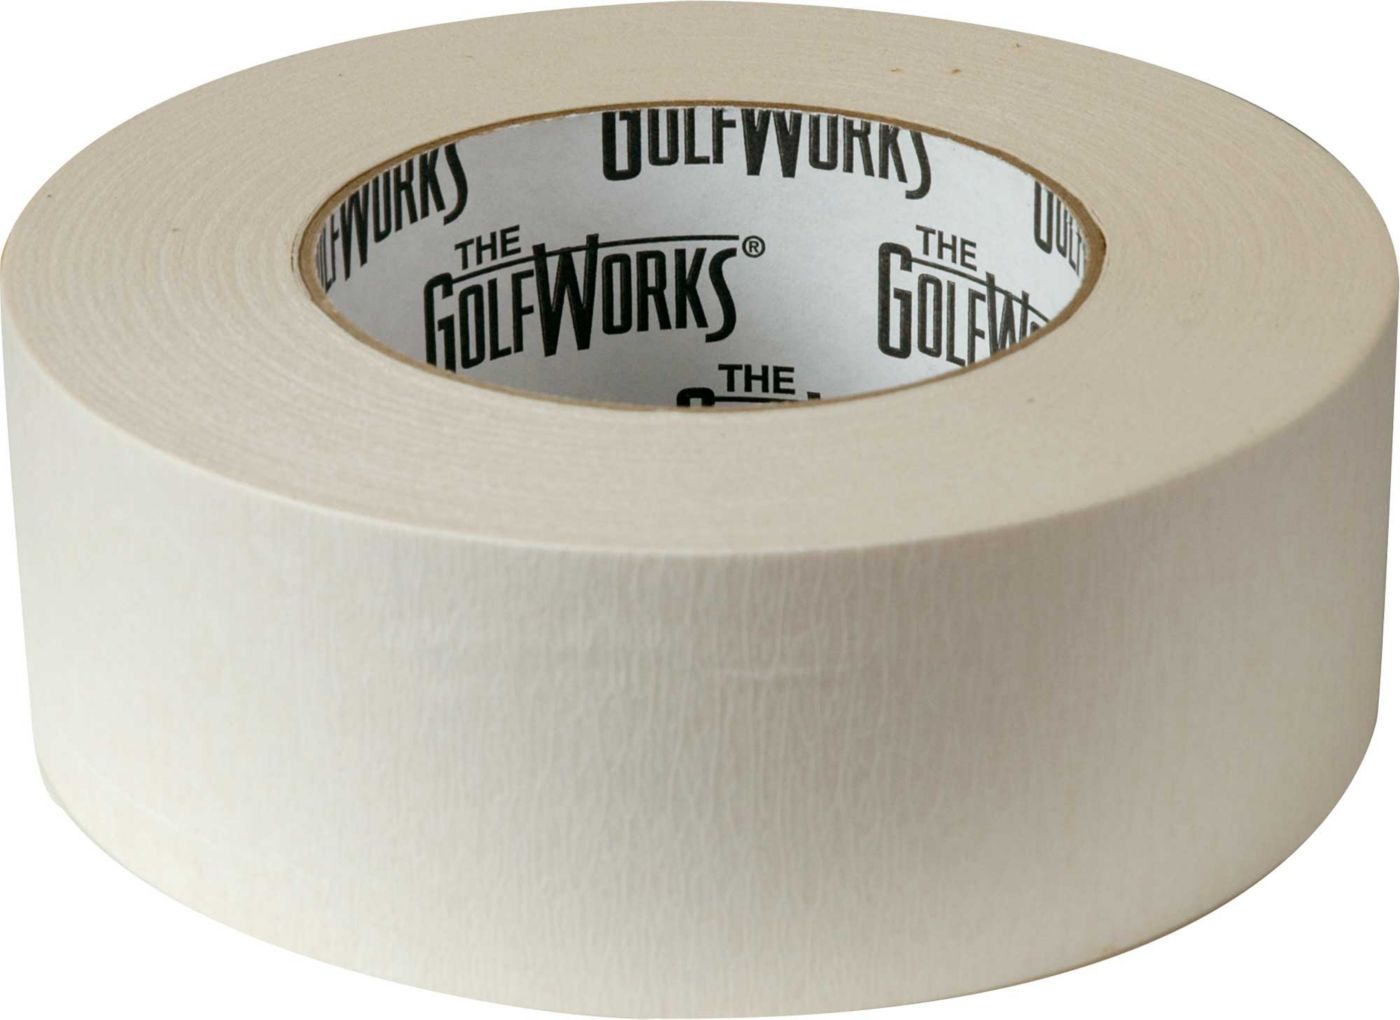 GolfWorks Double Sided Grip Tape - 2-Inch x 36-Foot